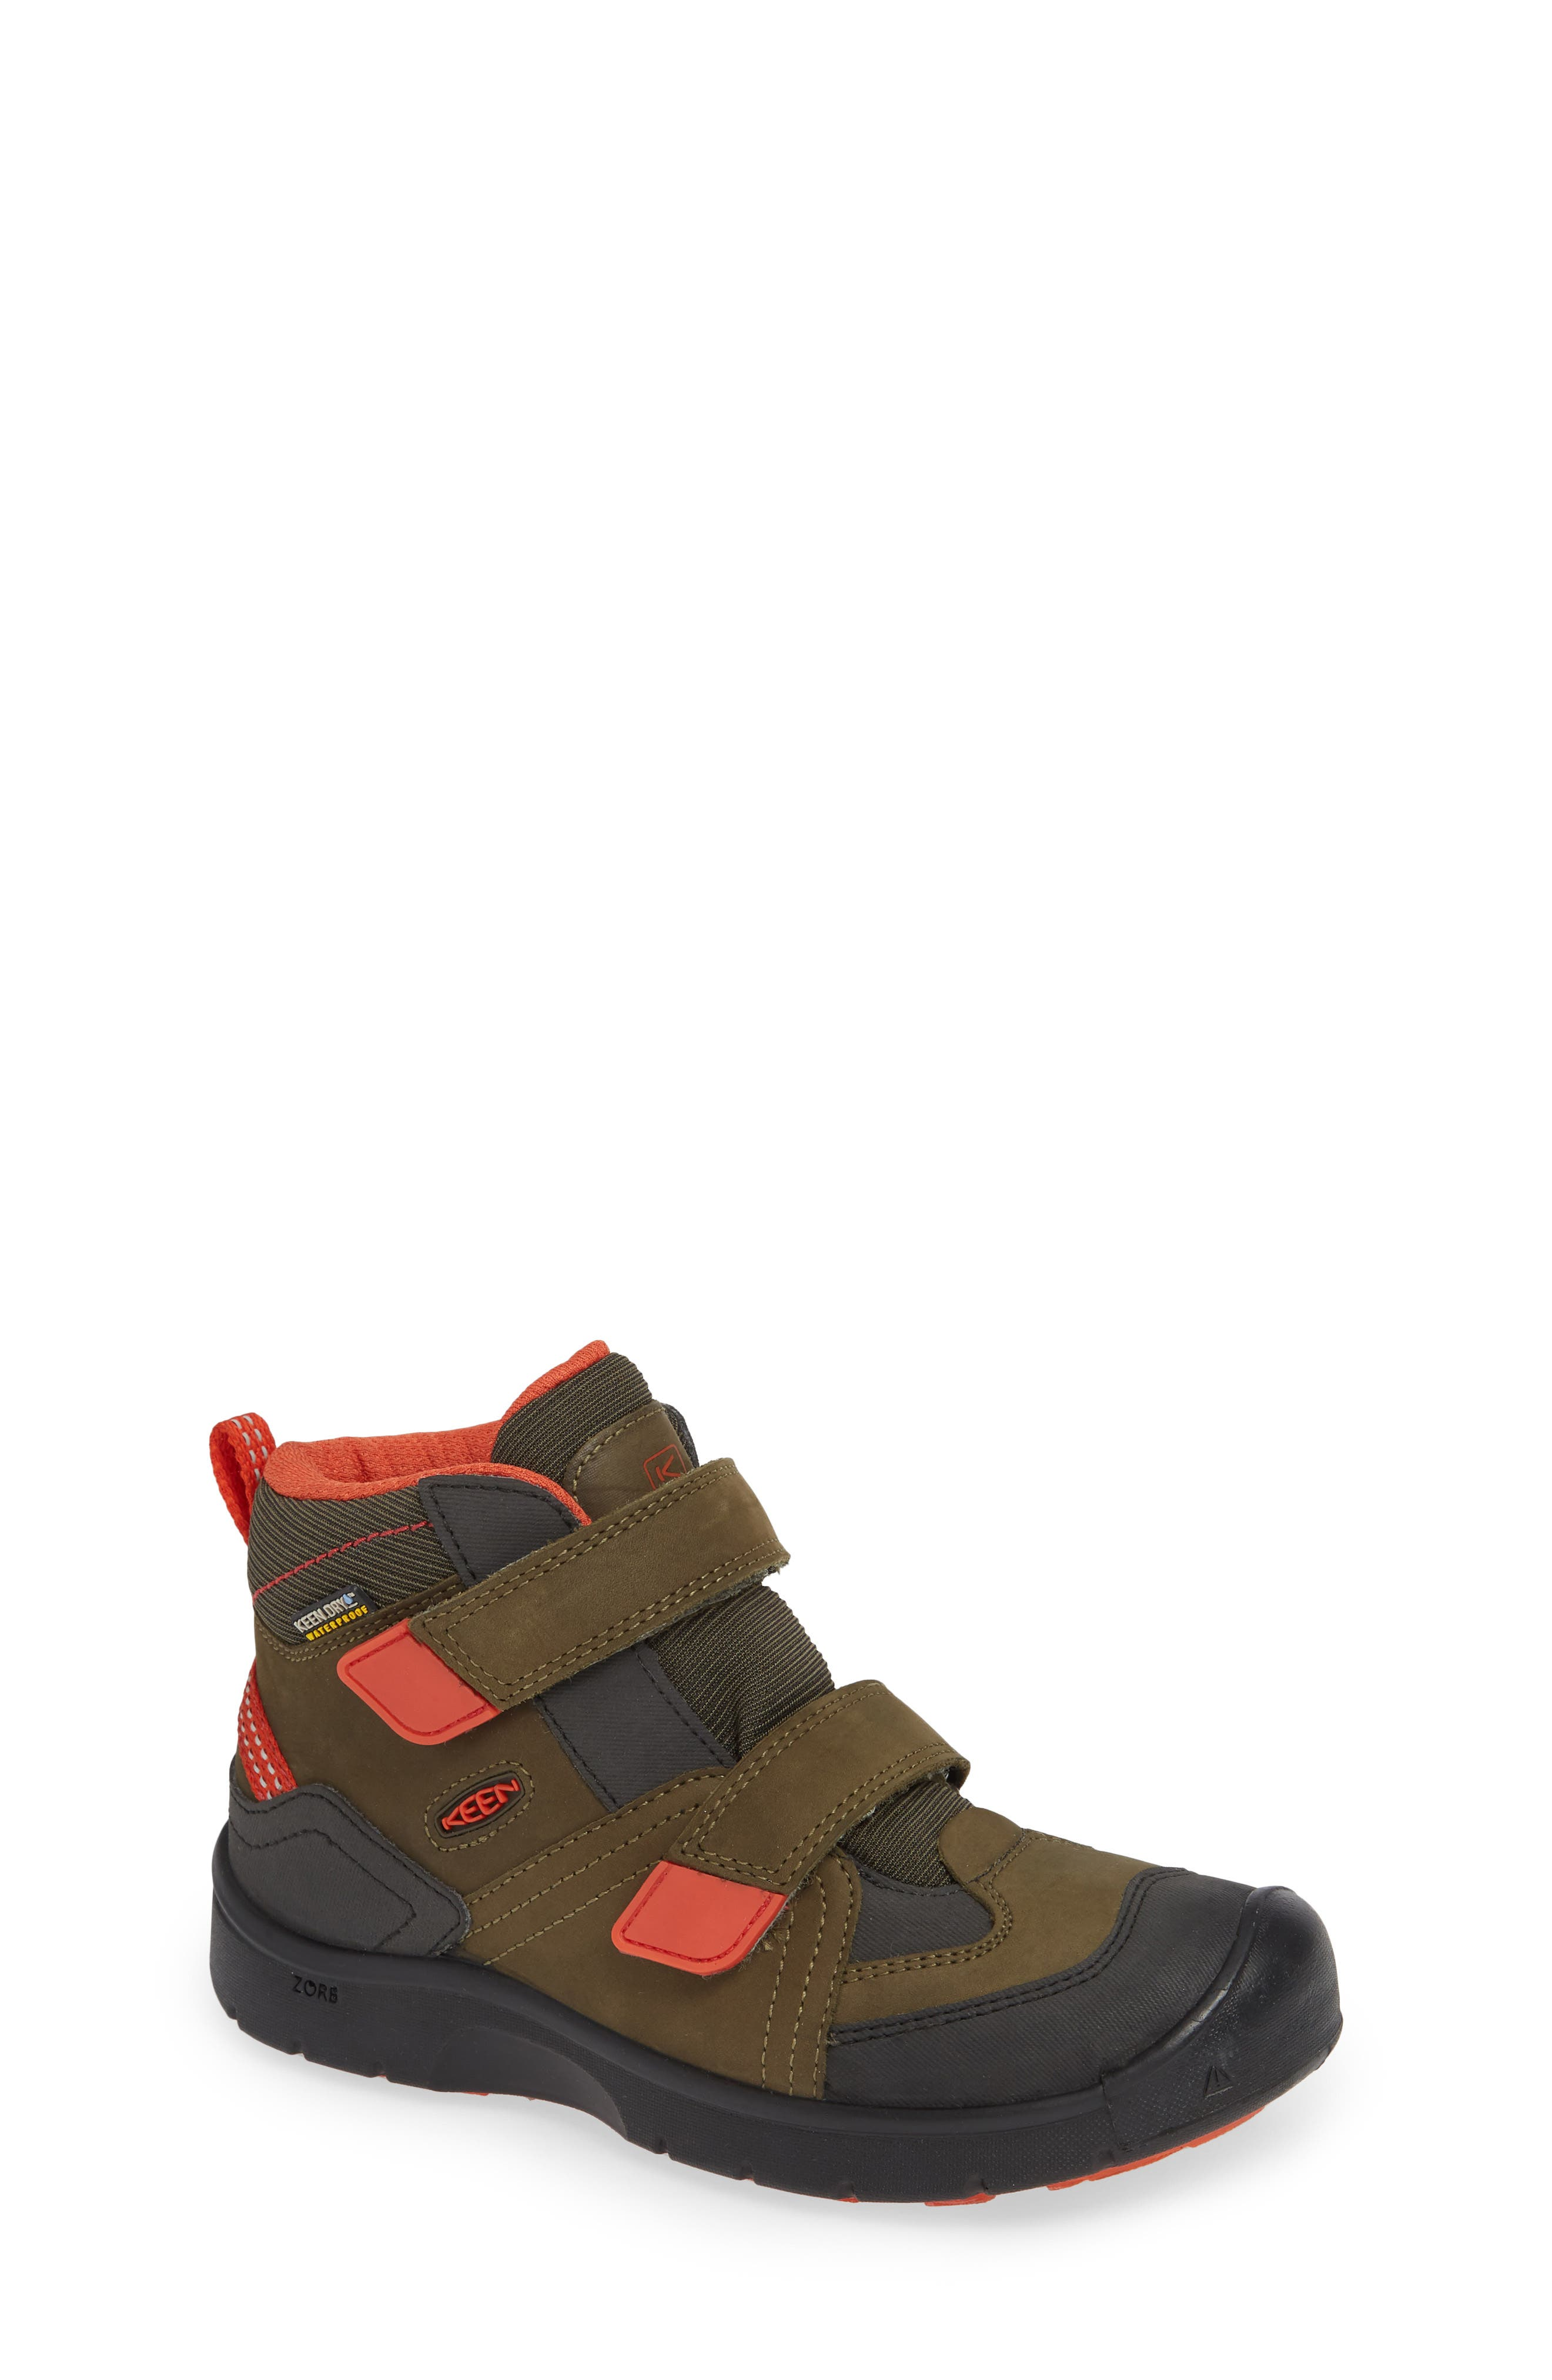 Hikeport Strap Waterproof Mid Boot,                             Main thumbnail 1, color,                             MARTINI OLIVE/ PUMPKIN